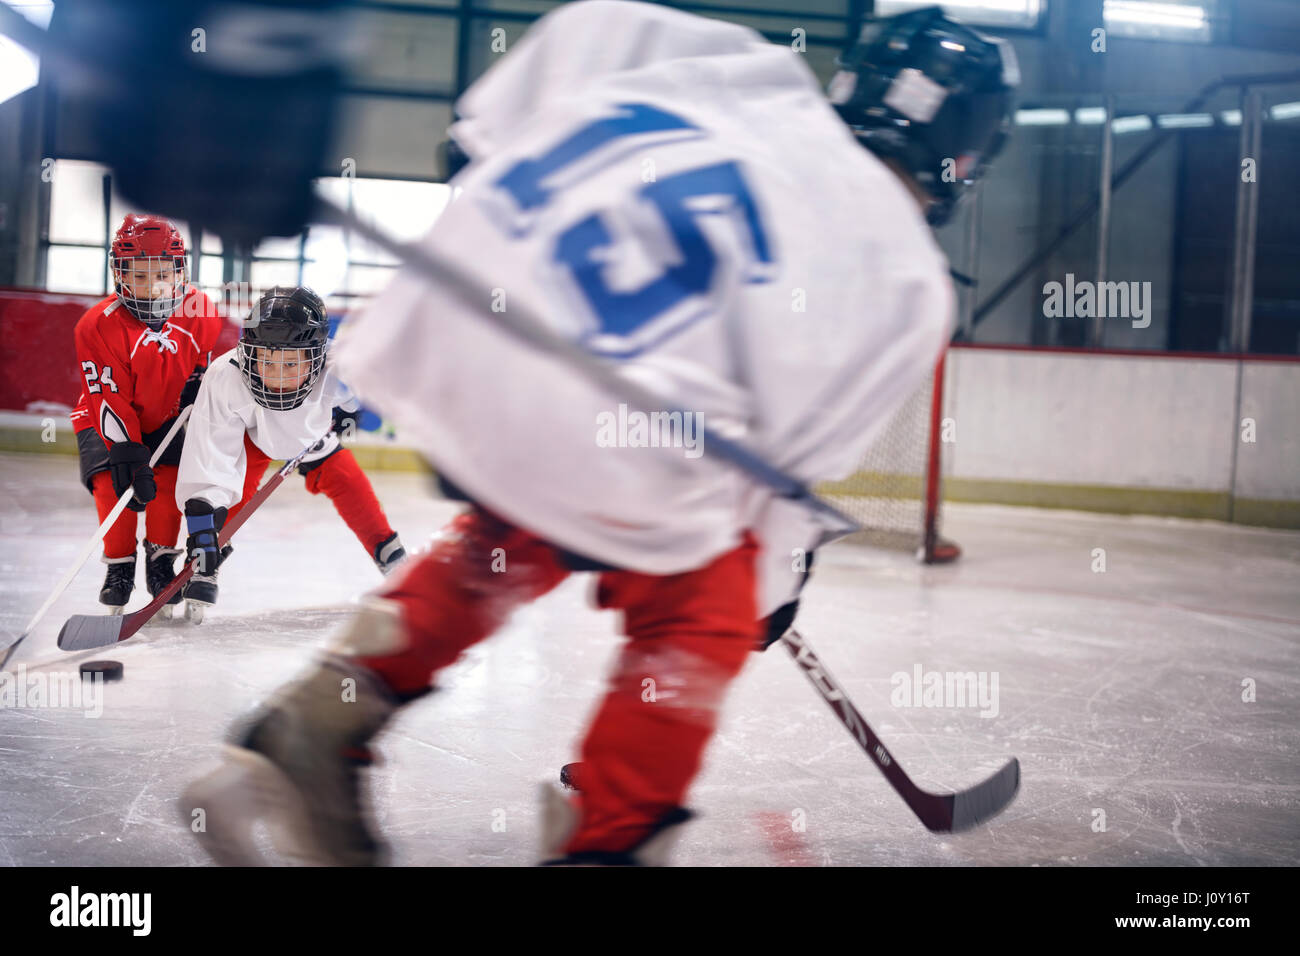 Little boy playing ice hockey on the rink - Stock Image